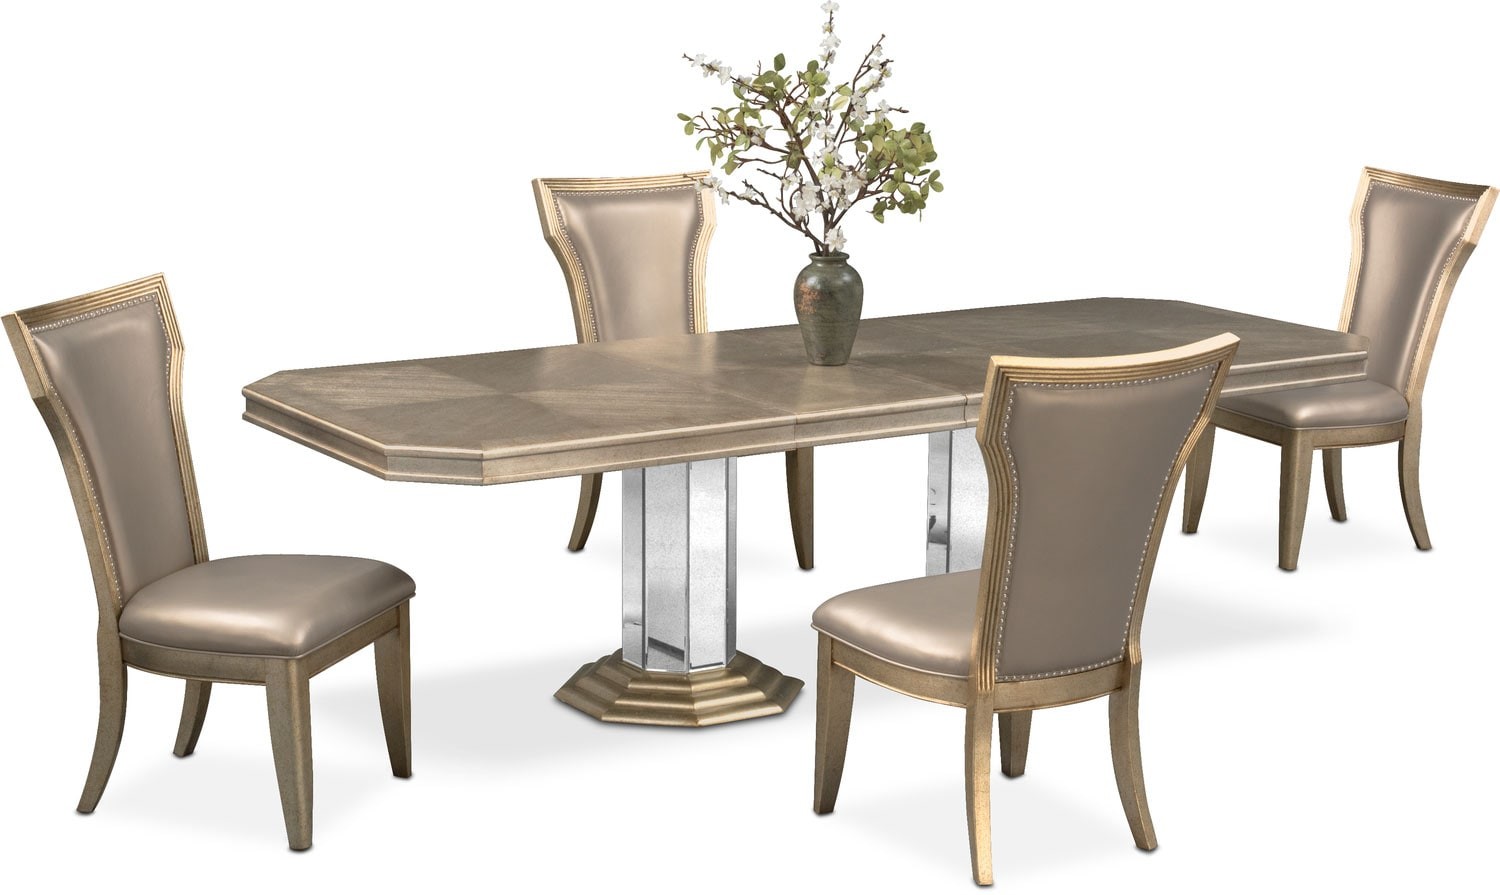 Dining Room Furniture - Angelina Dining Table and 4 Dining Chairs